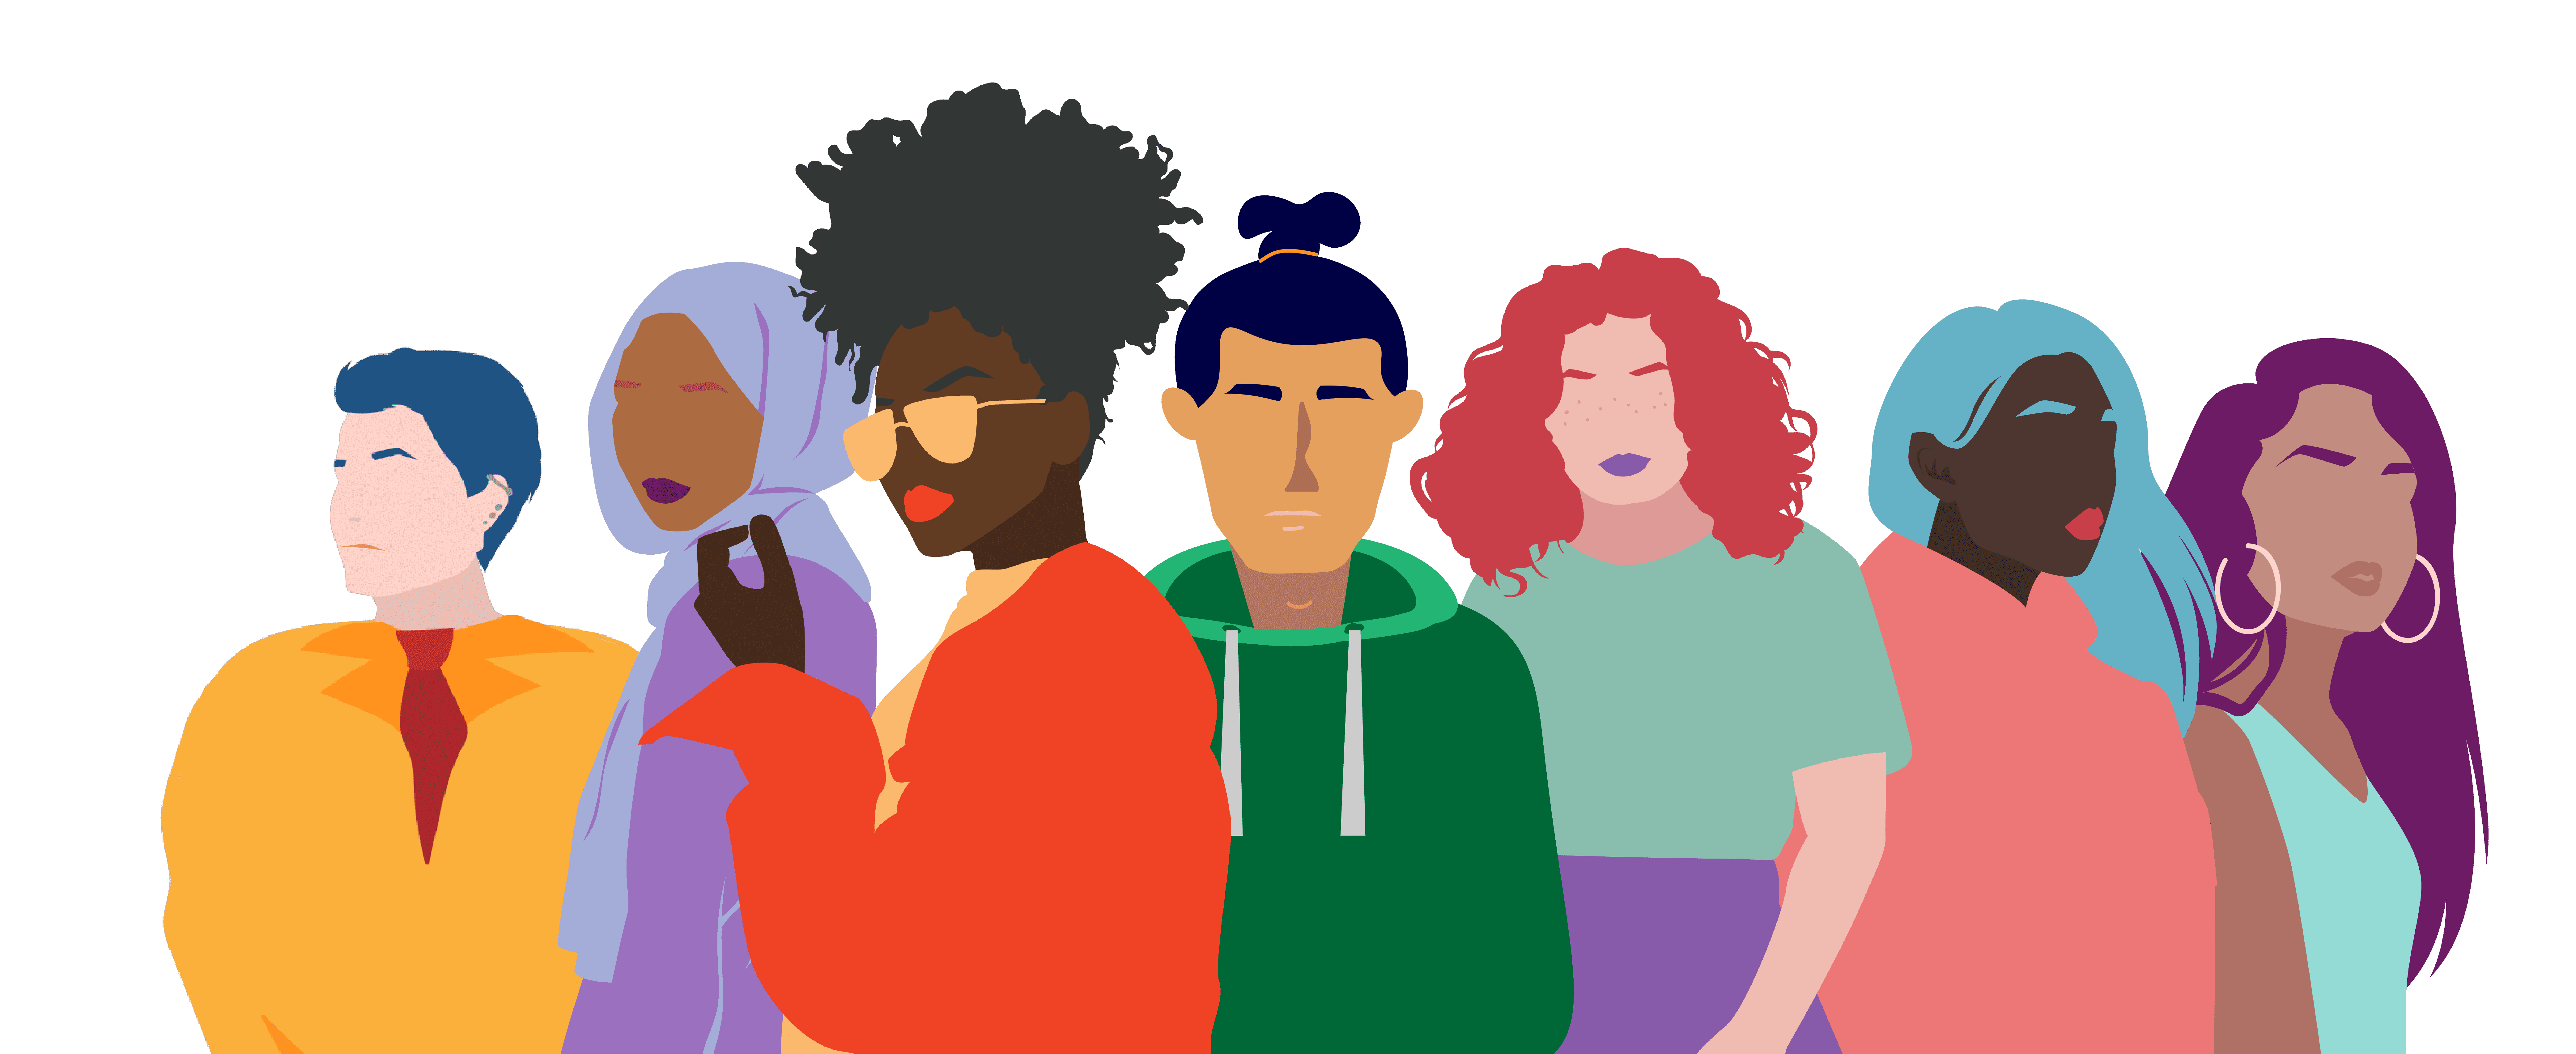 Graphic of a diverse group of people: header image